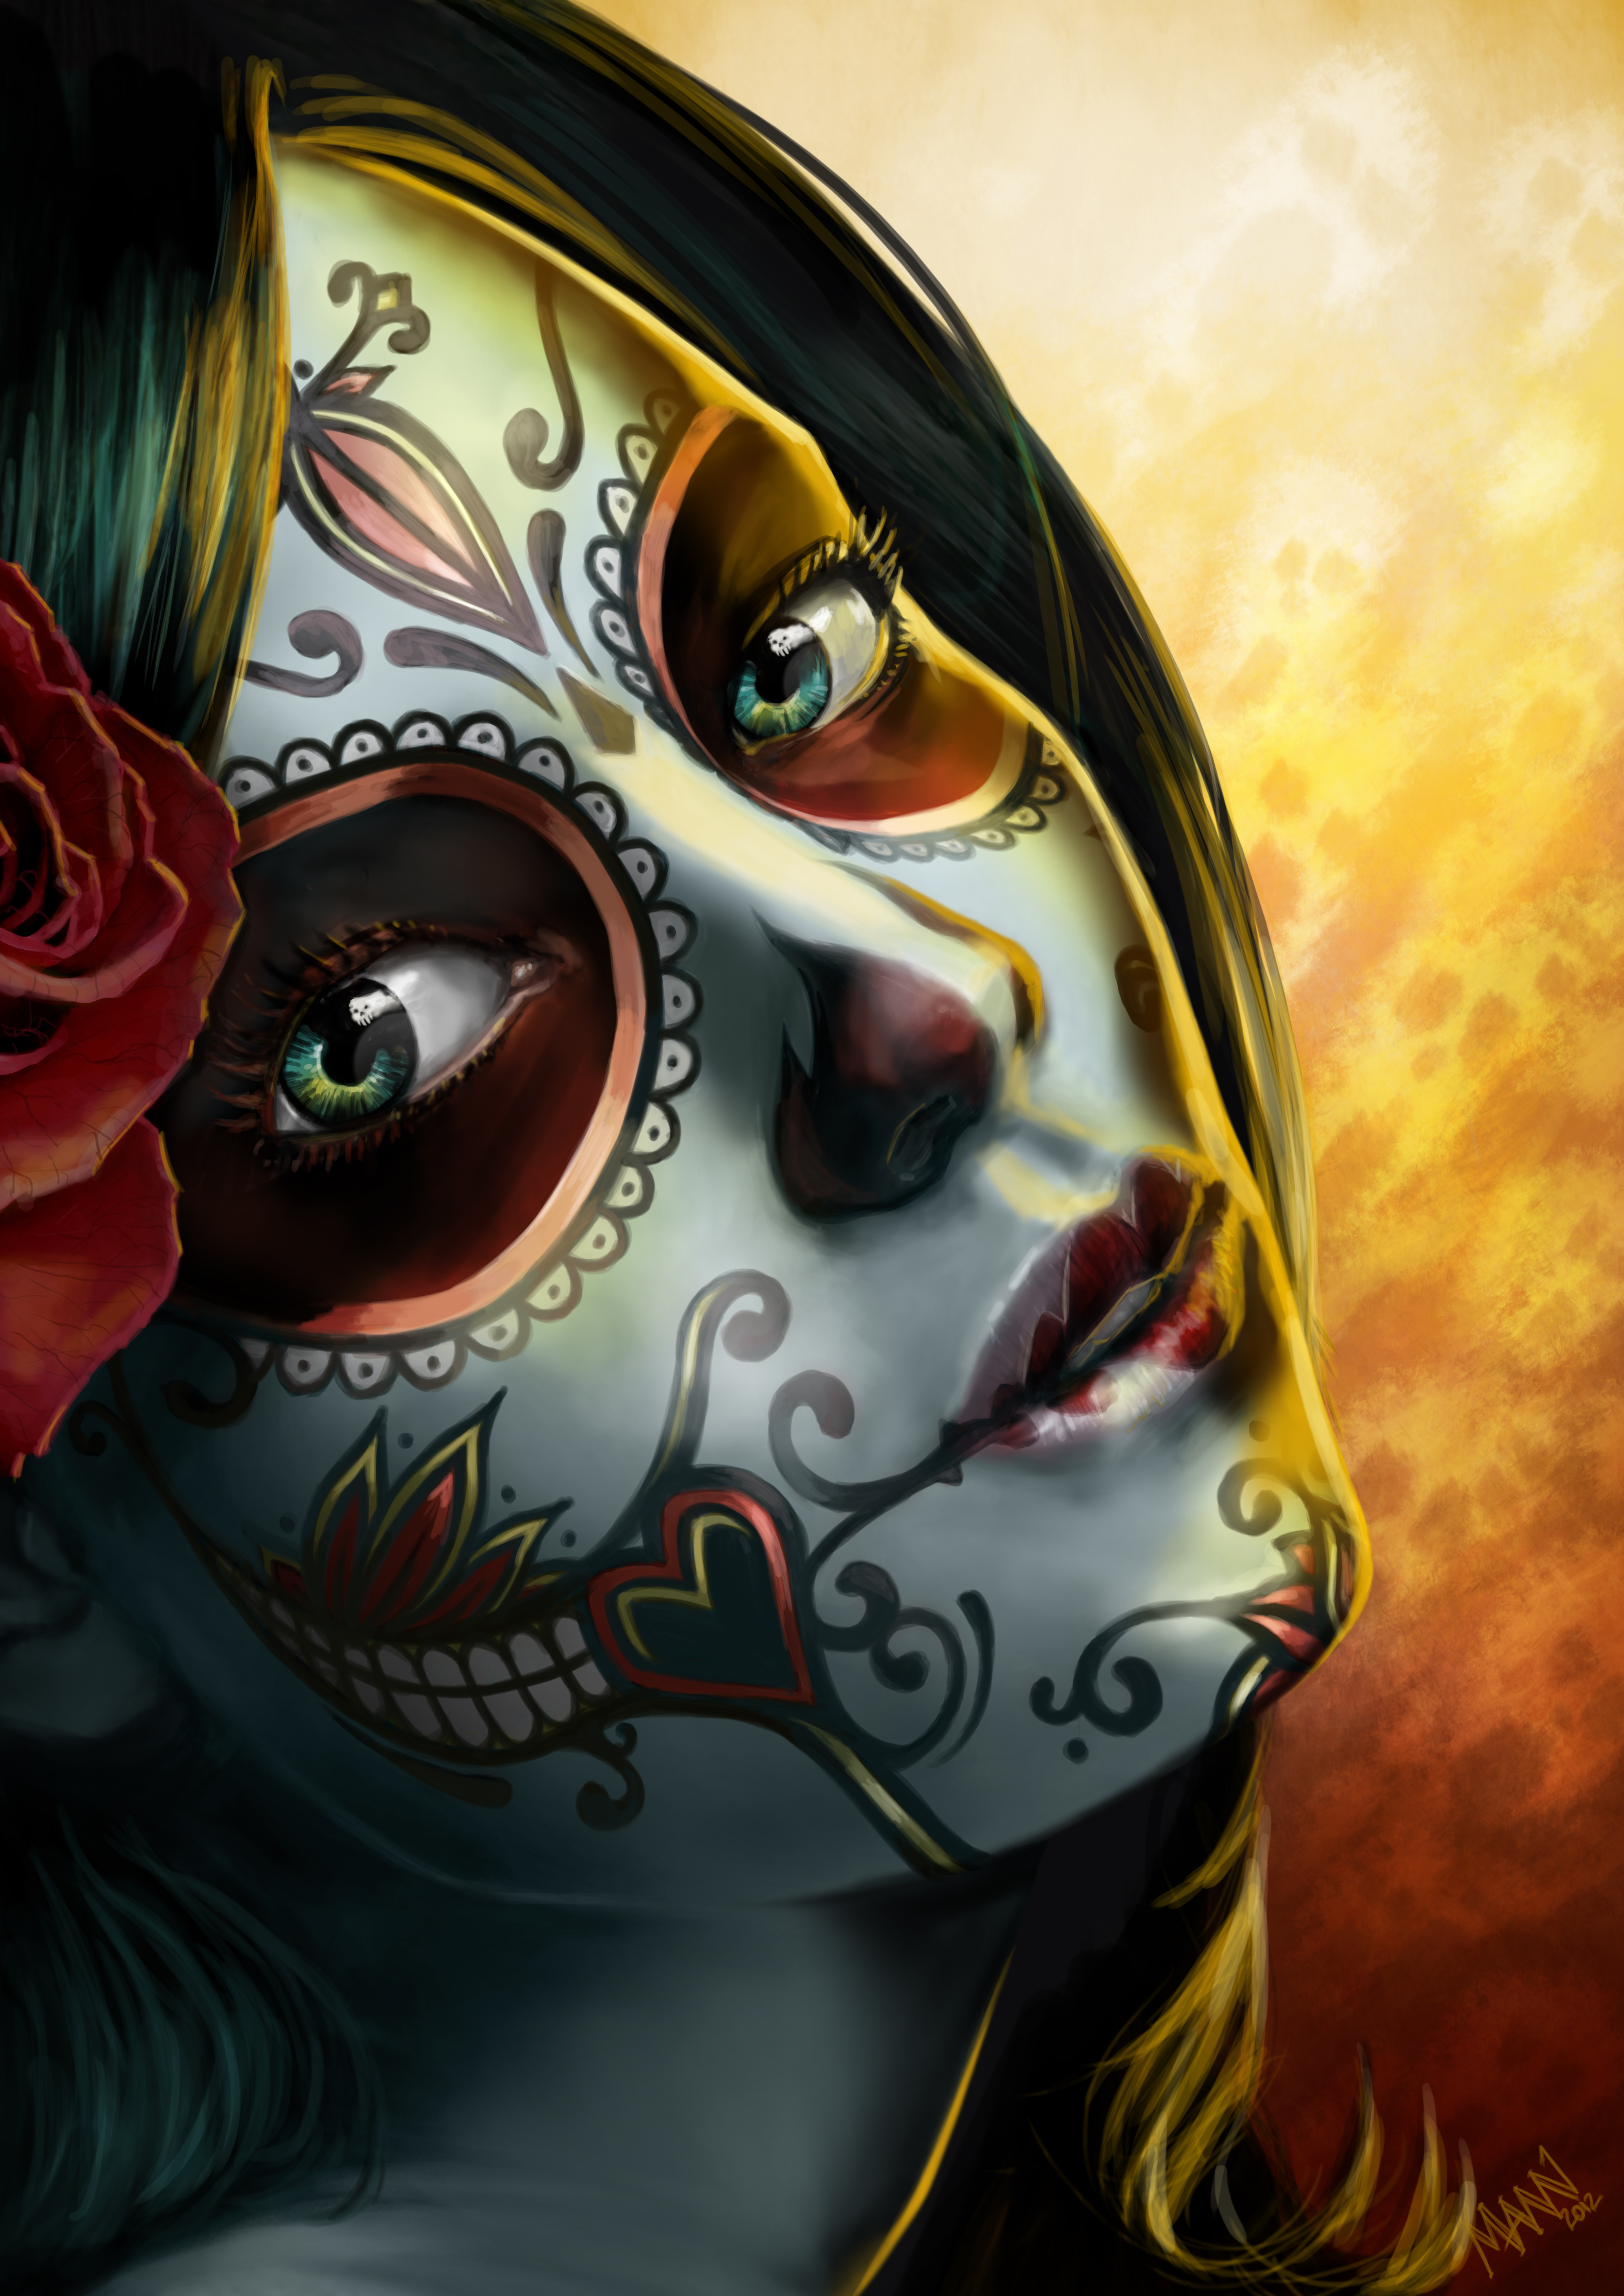 Free Download Wallpaper Day Of The Dead Hd Photos Gallery